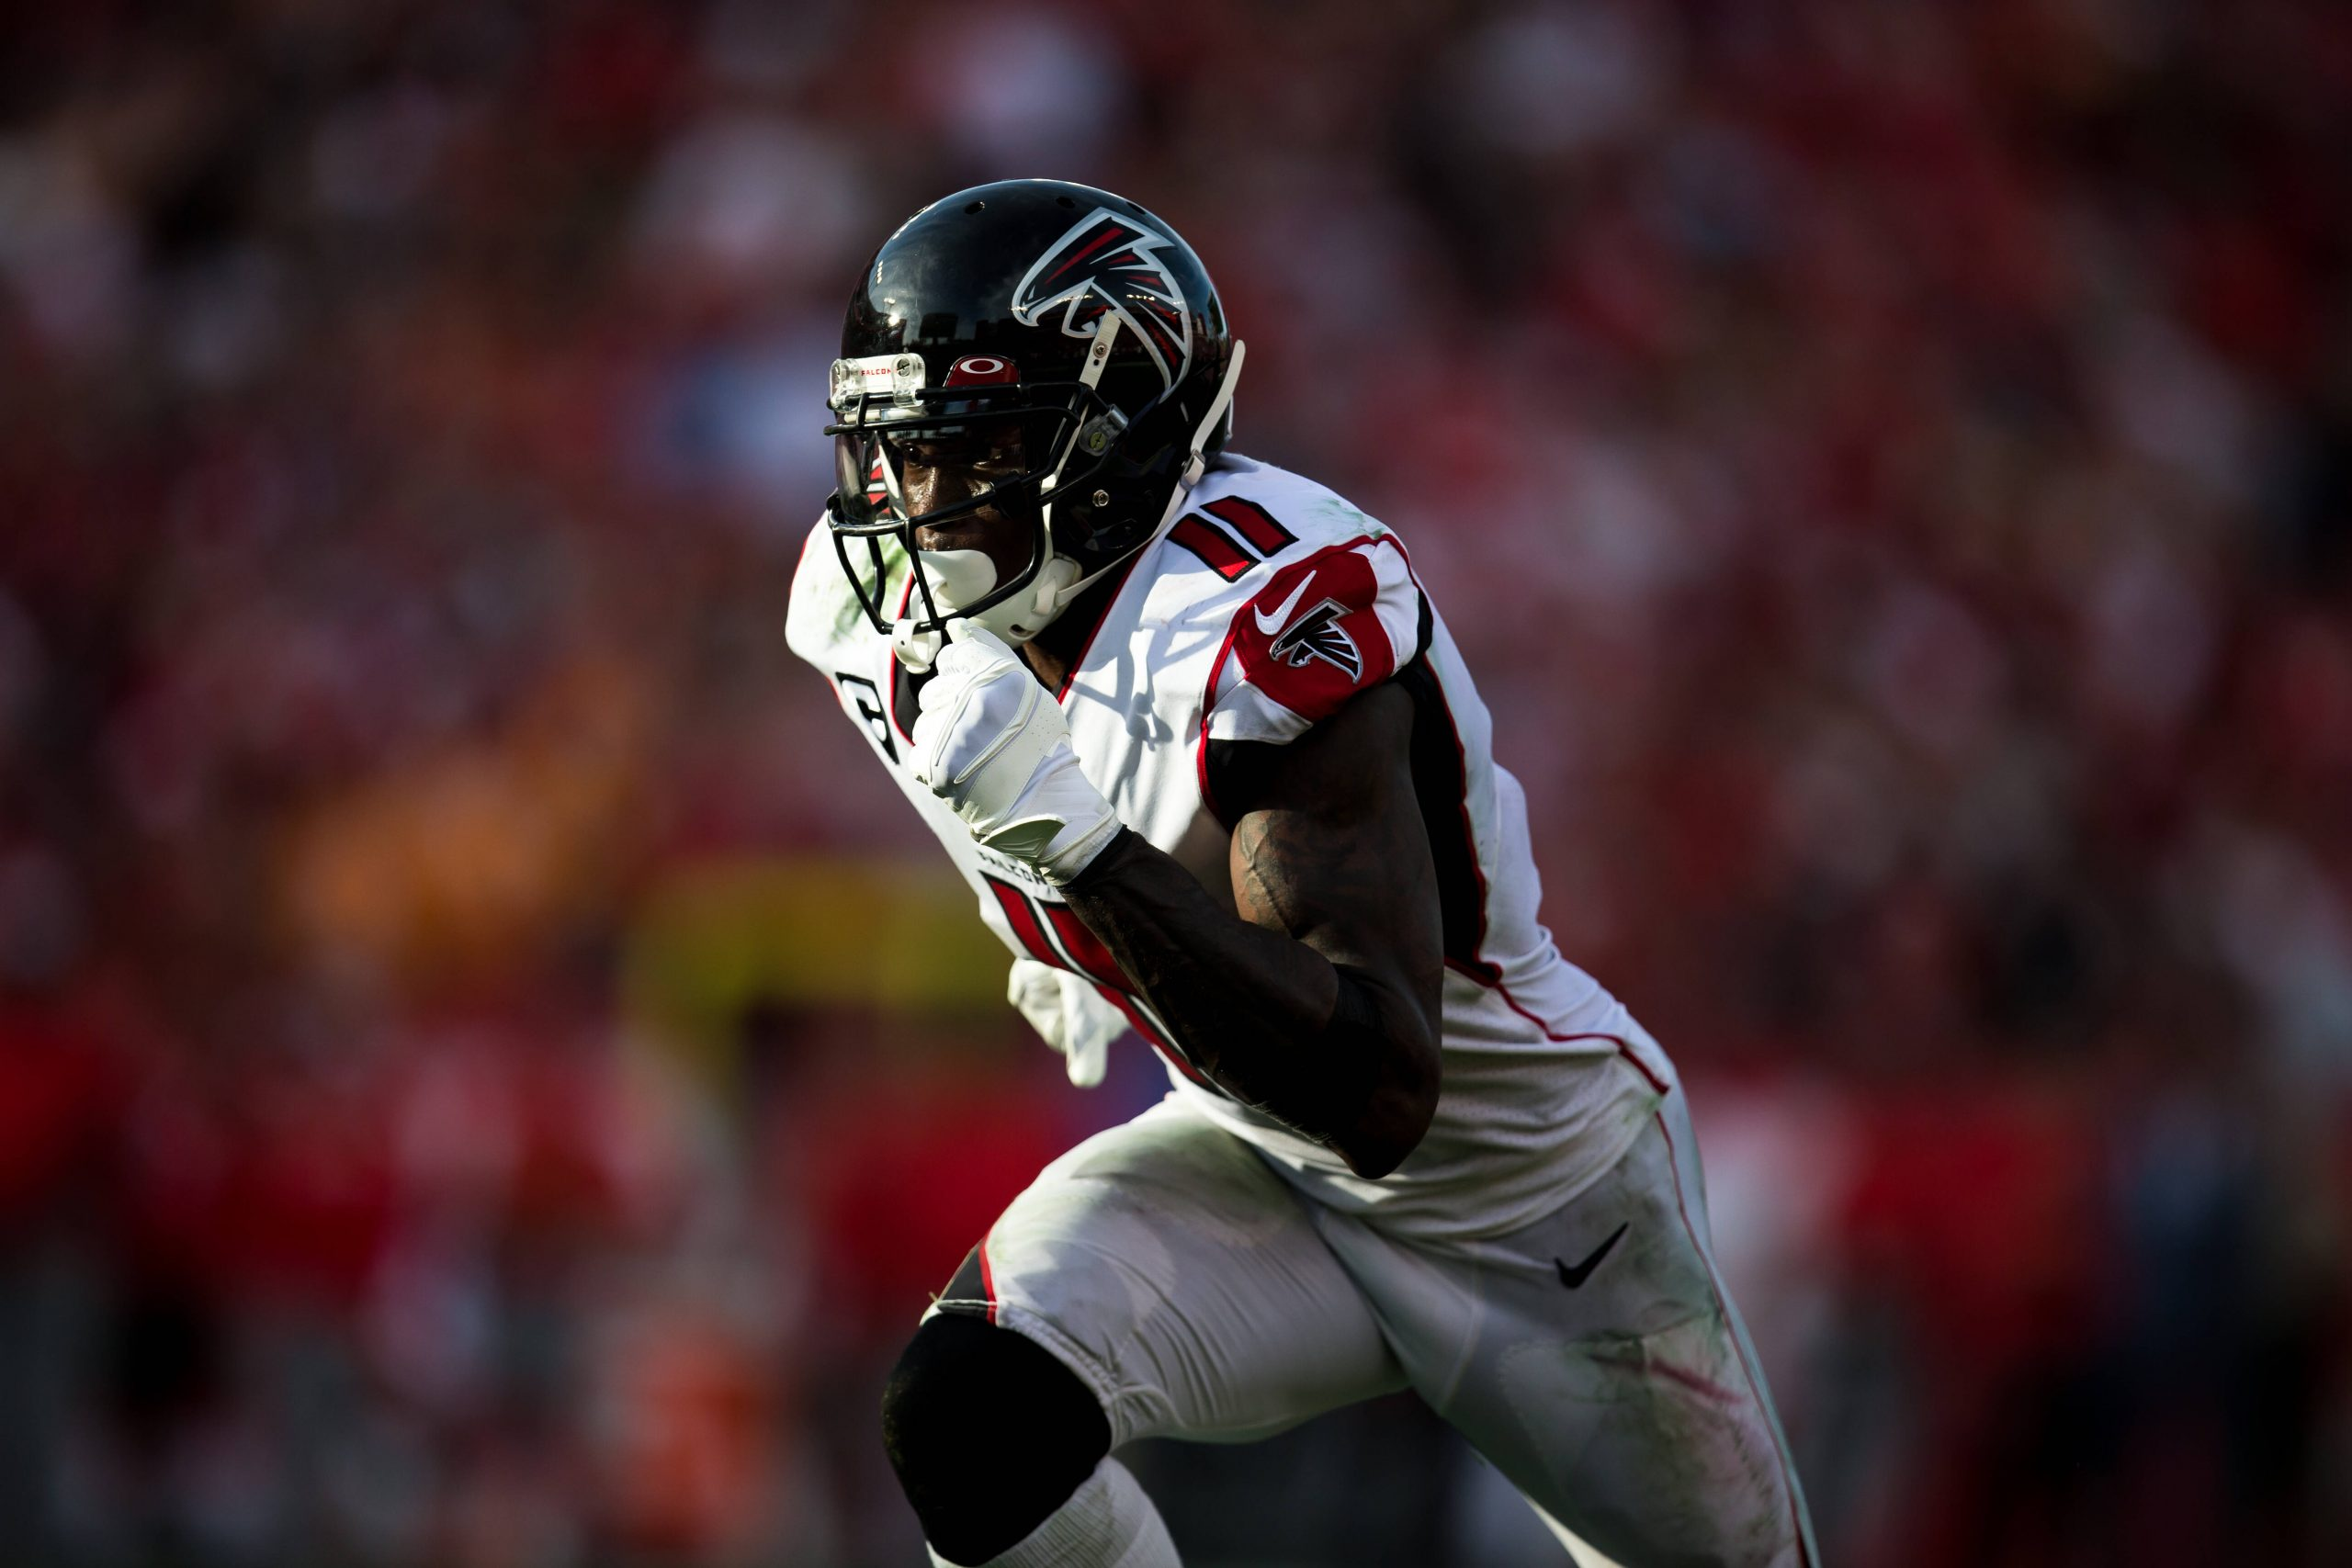 TAMPA, FL - DECEMBER 29: Atlanta Falcons Wide Receiver Julio Jones (11) runs a route during the Tampa Bay Buccaneers gam